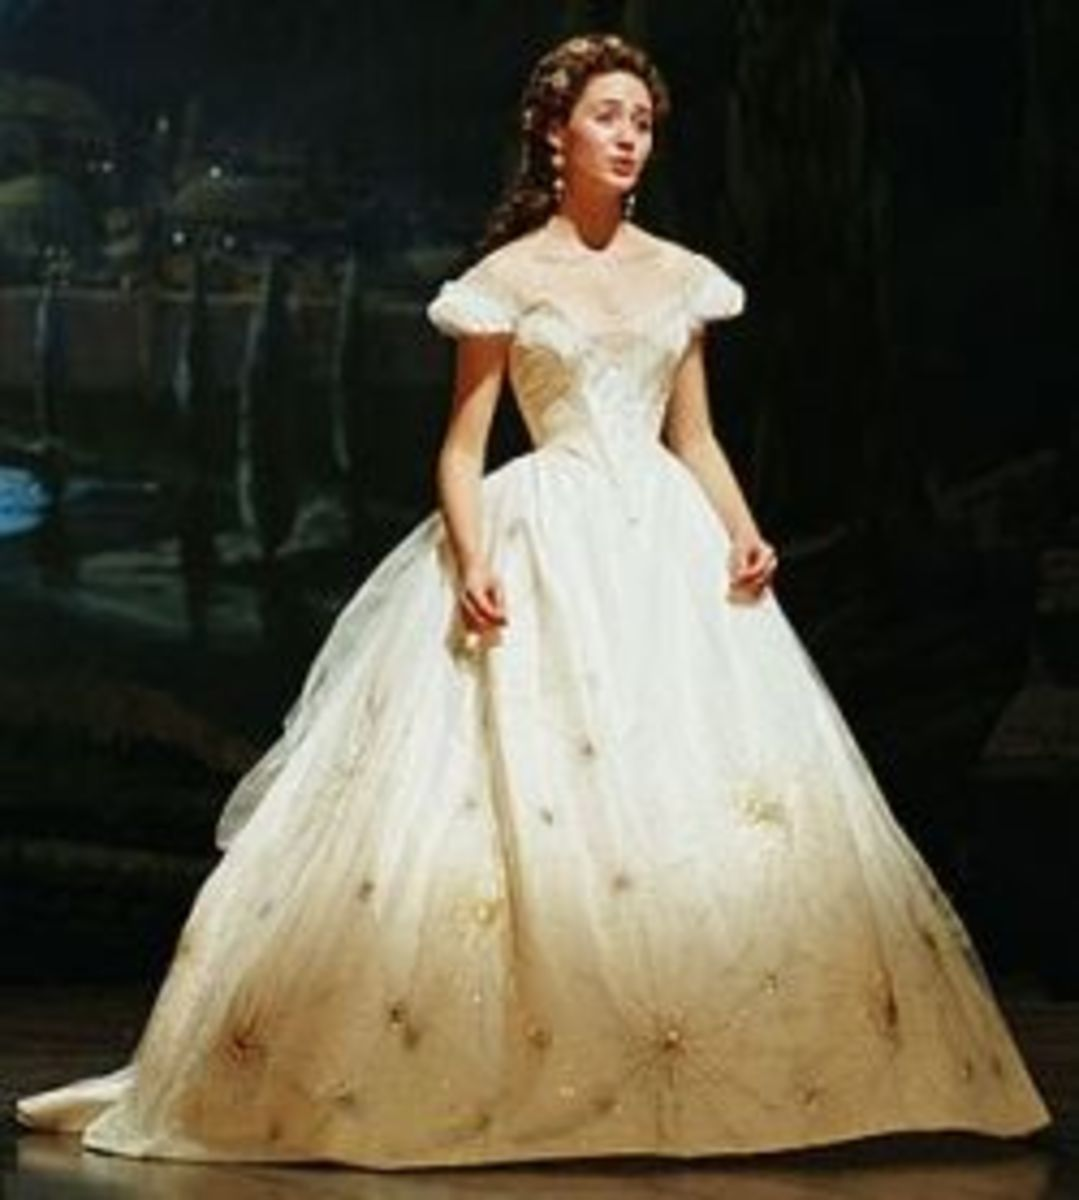 Emmy Rossum as Christine Daae in the Think of Gown from Phantom of the Opera